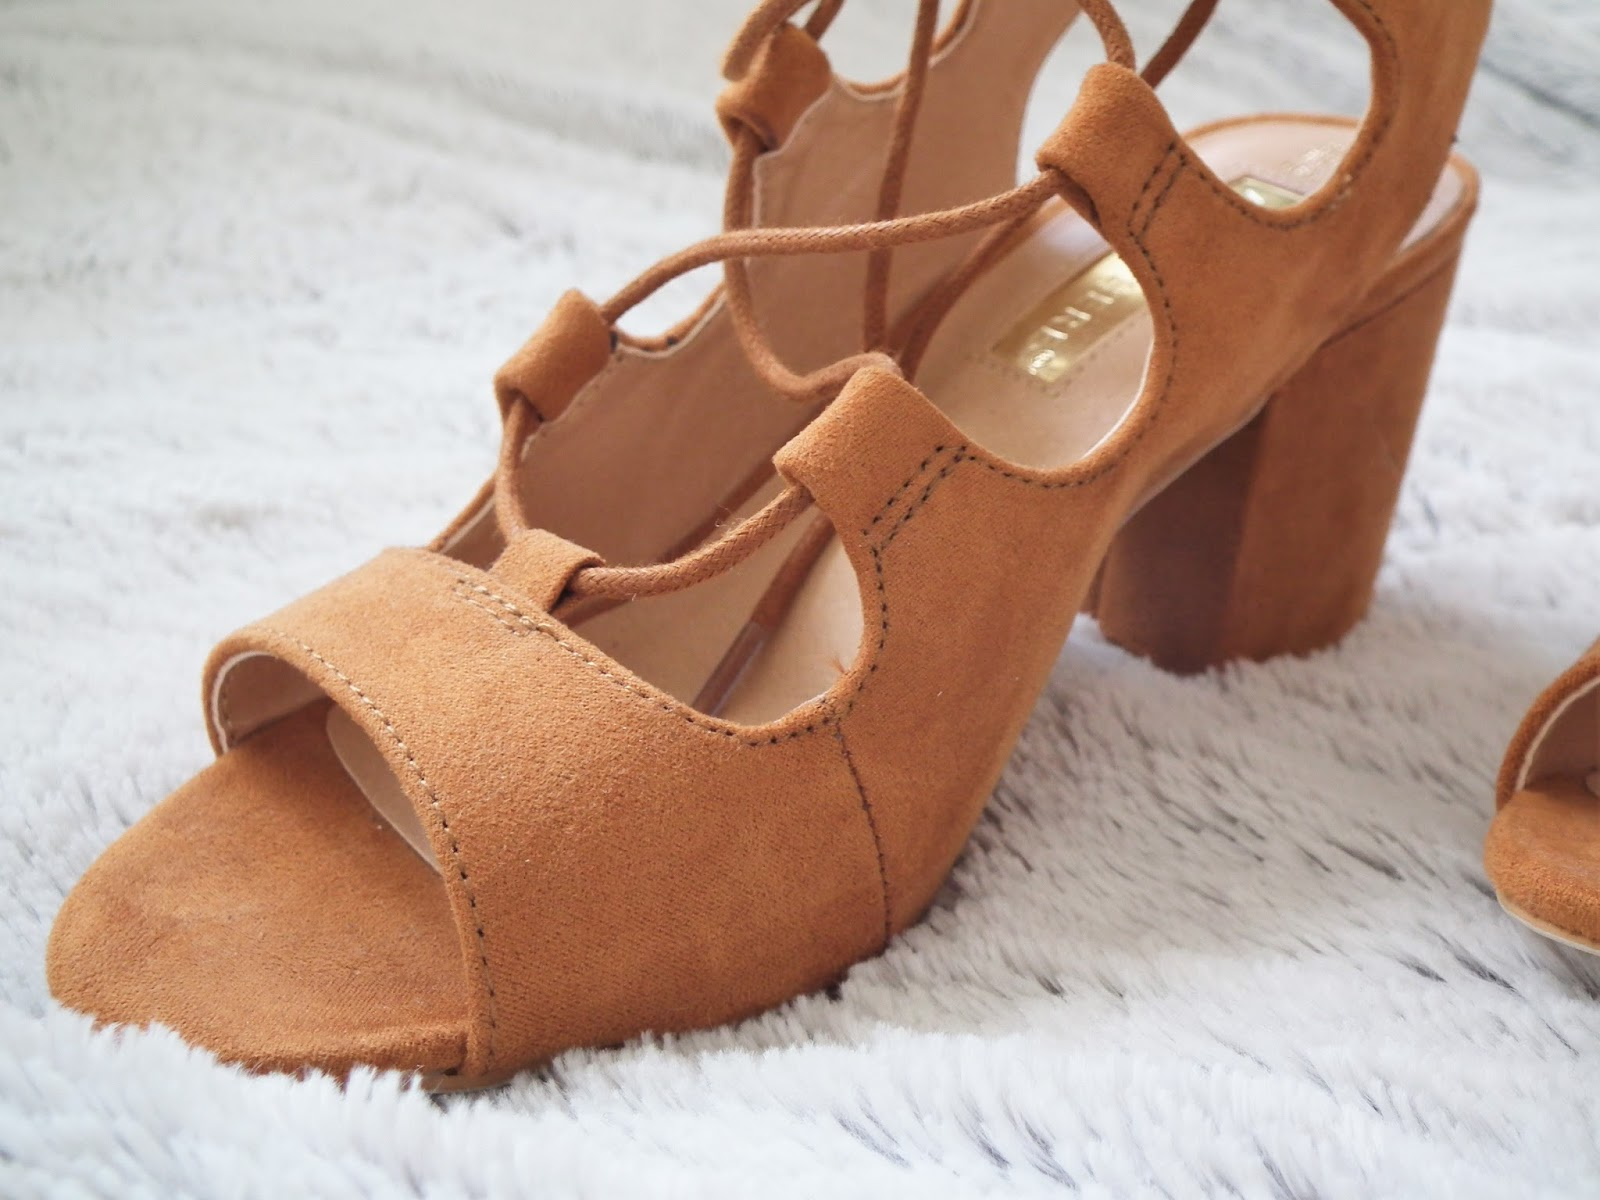 Primark Haul - Spring 2016 laceup tanned heals